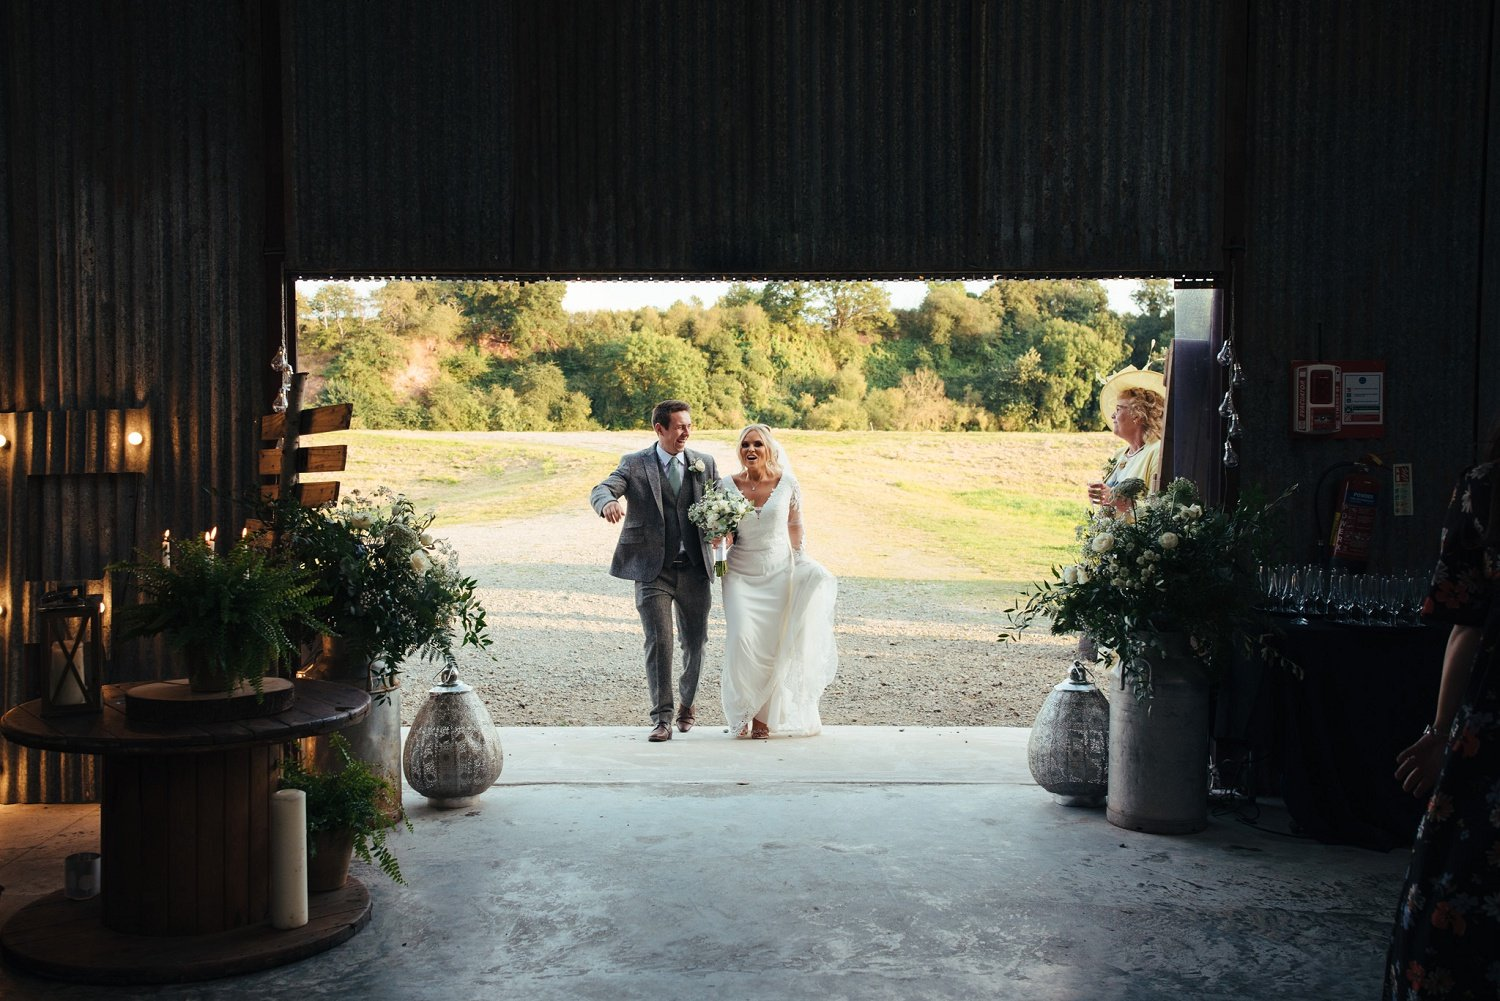 Bride and groom make their entrance into the barn at Redbank in Herefordshire